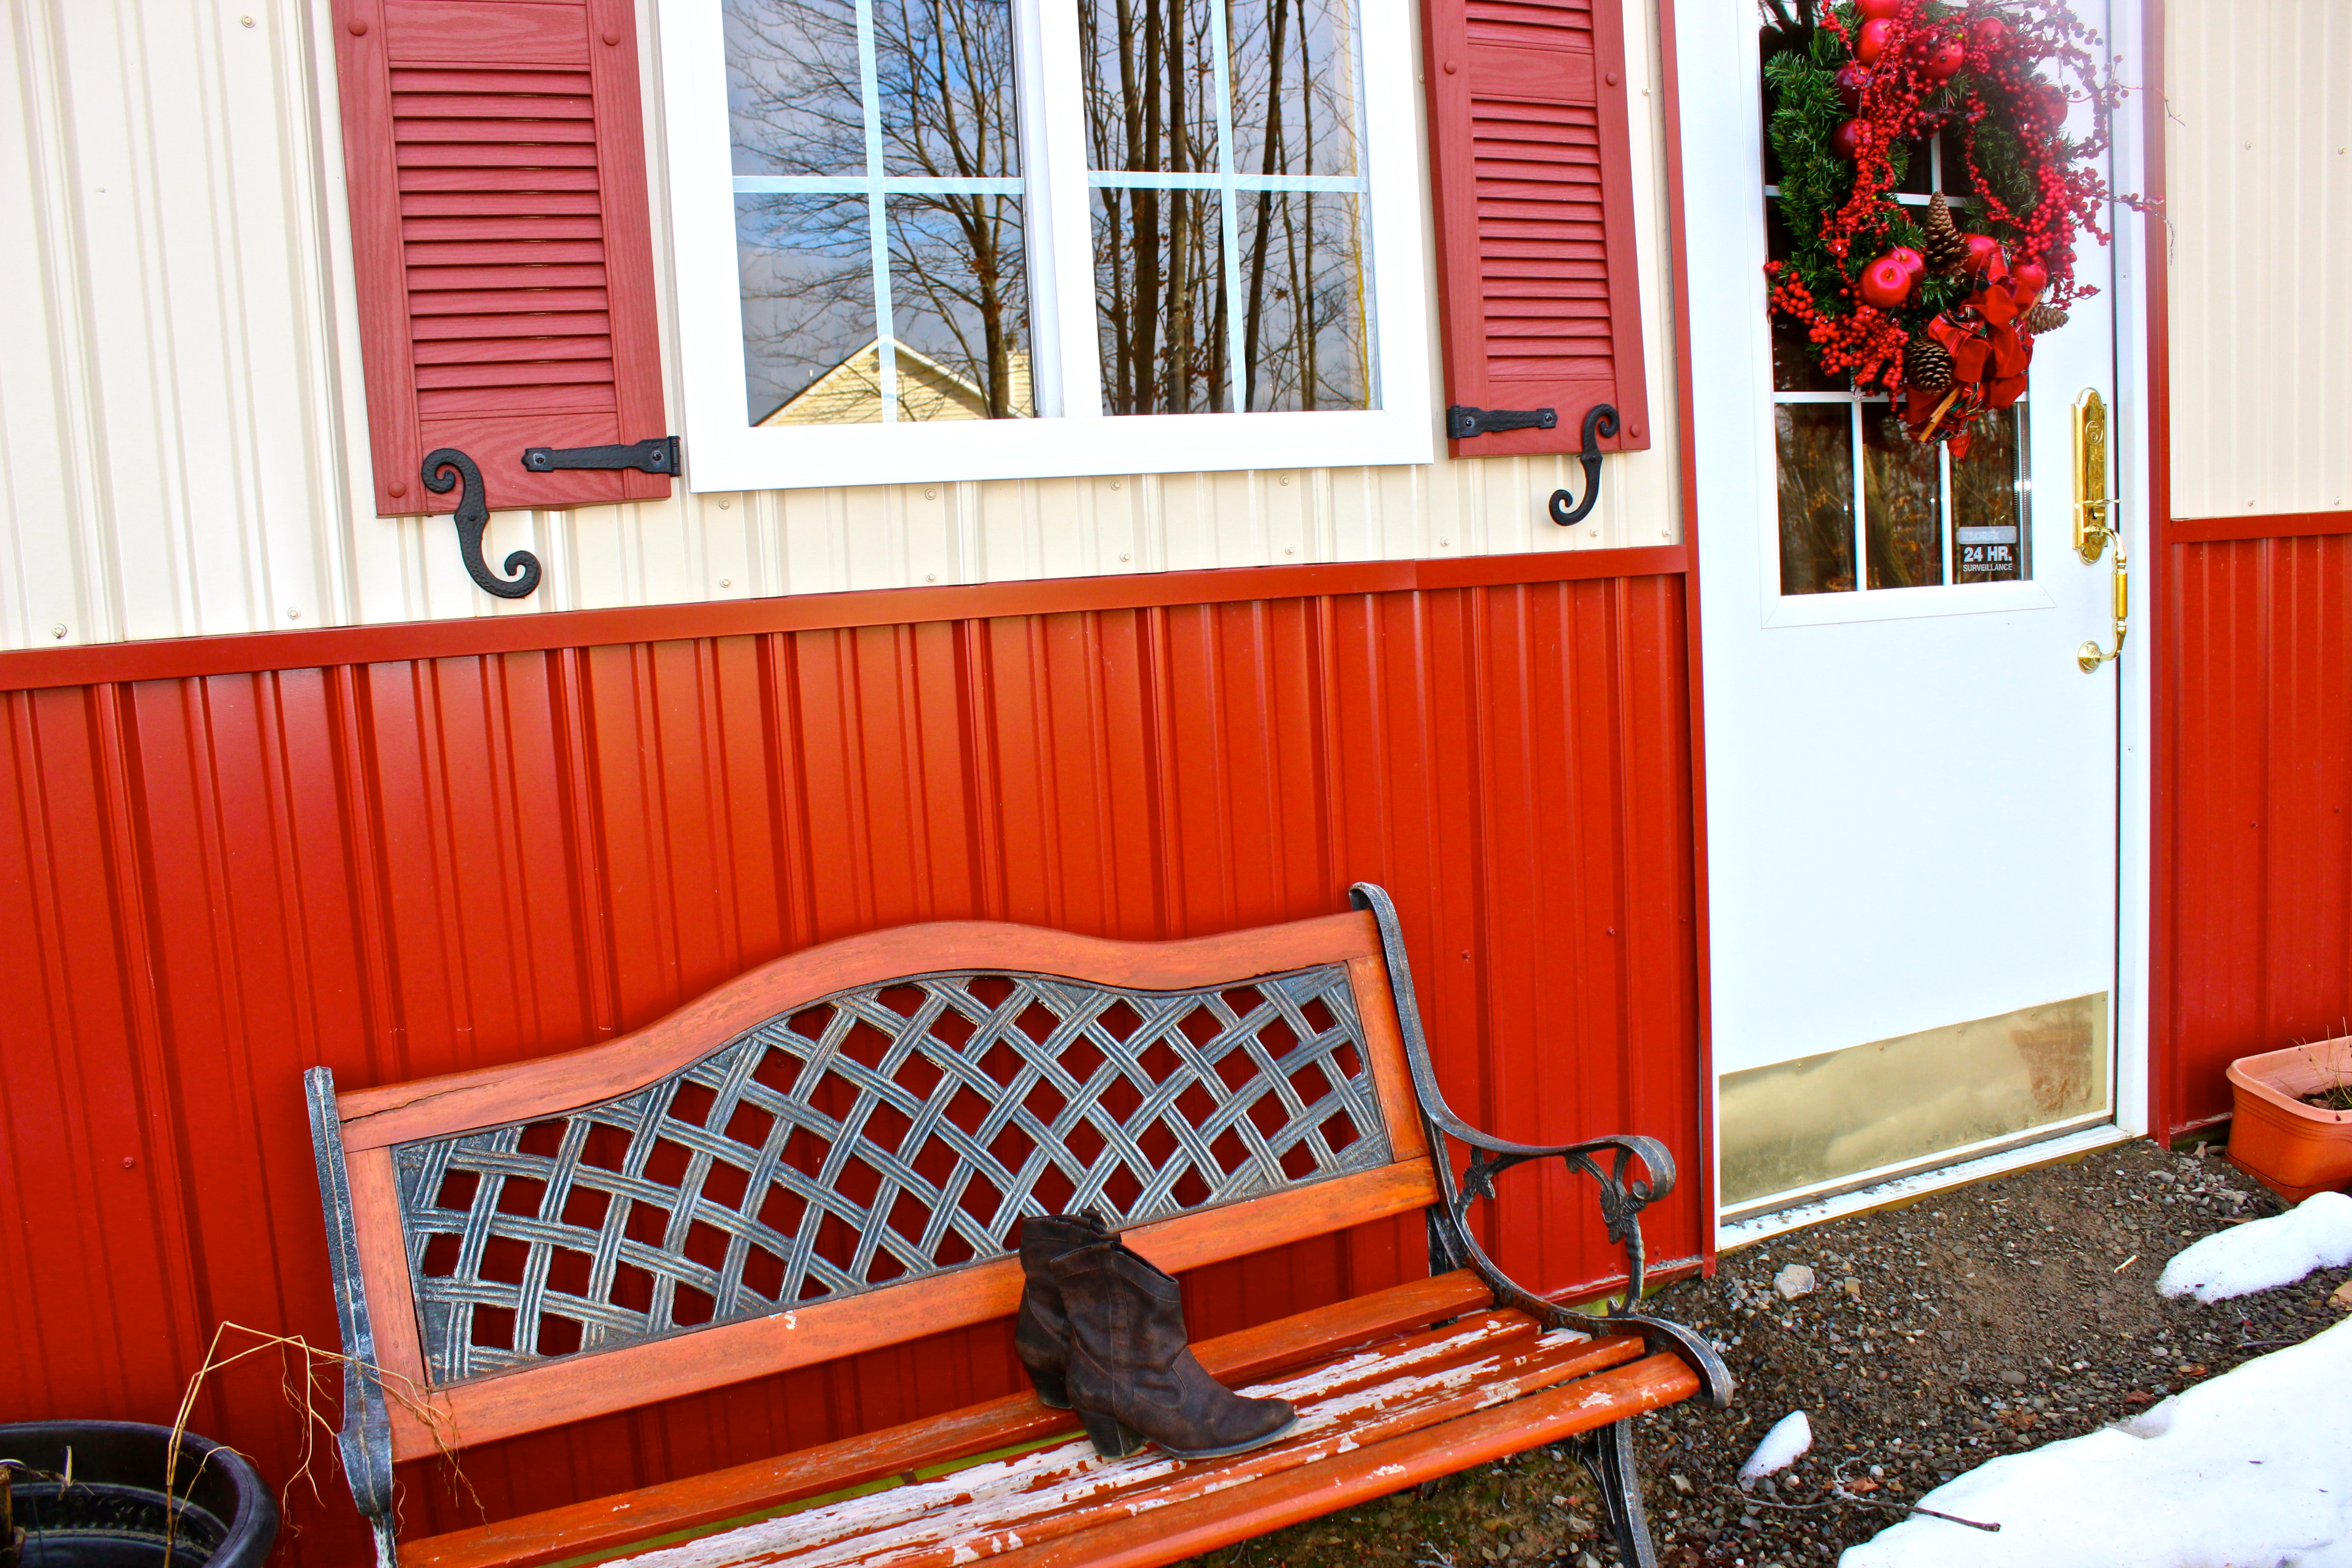 Bench in front of barn.